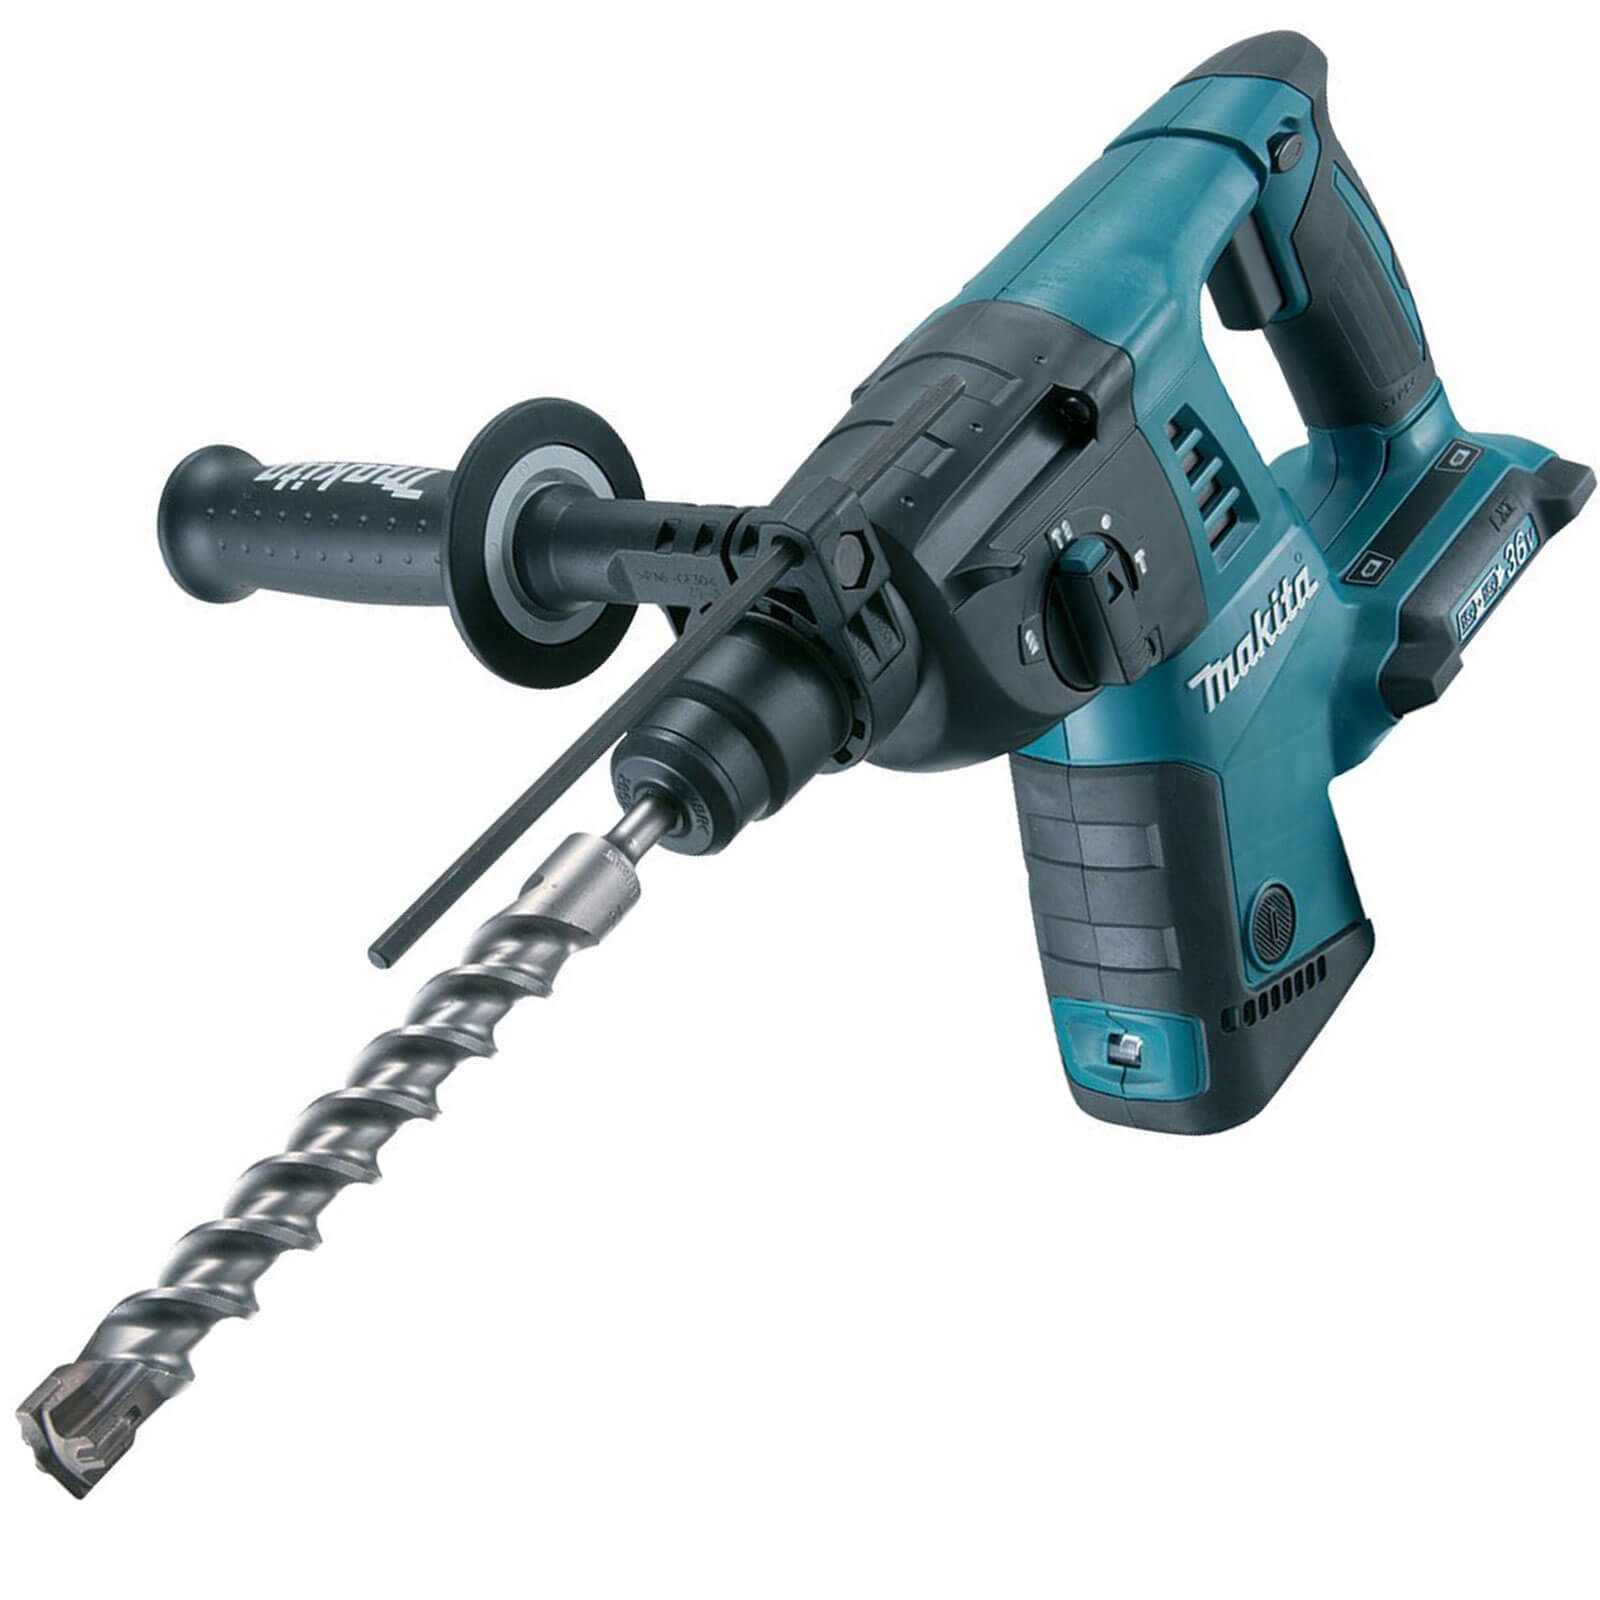 Image of Makita DHR263Z Twin 18v Cordless SDS Plus Rotary Hammer Drill without Battery or Charger